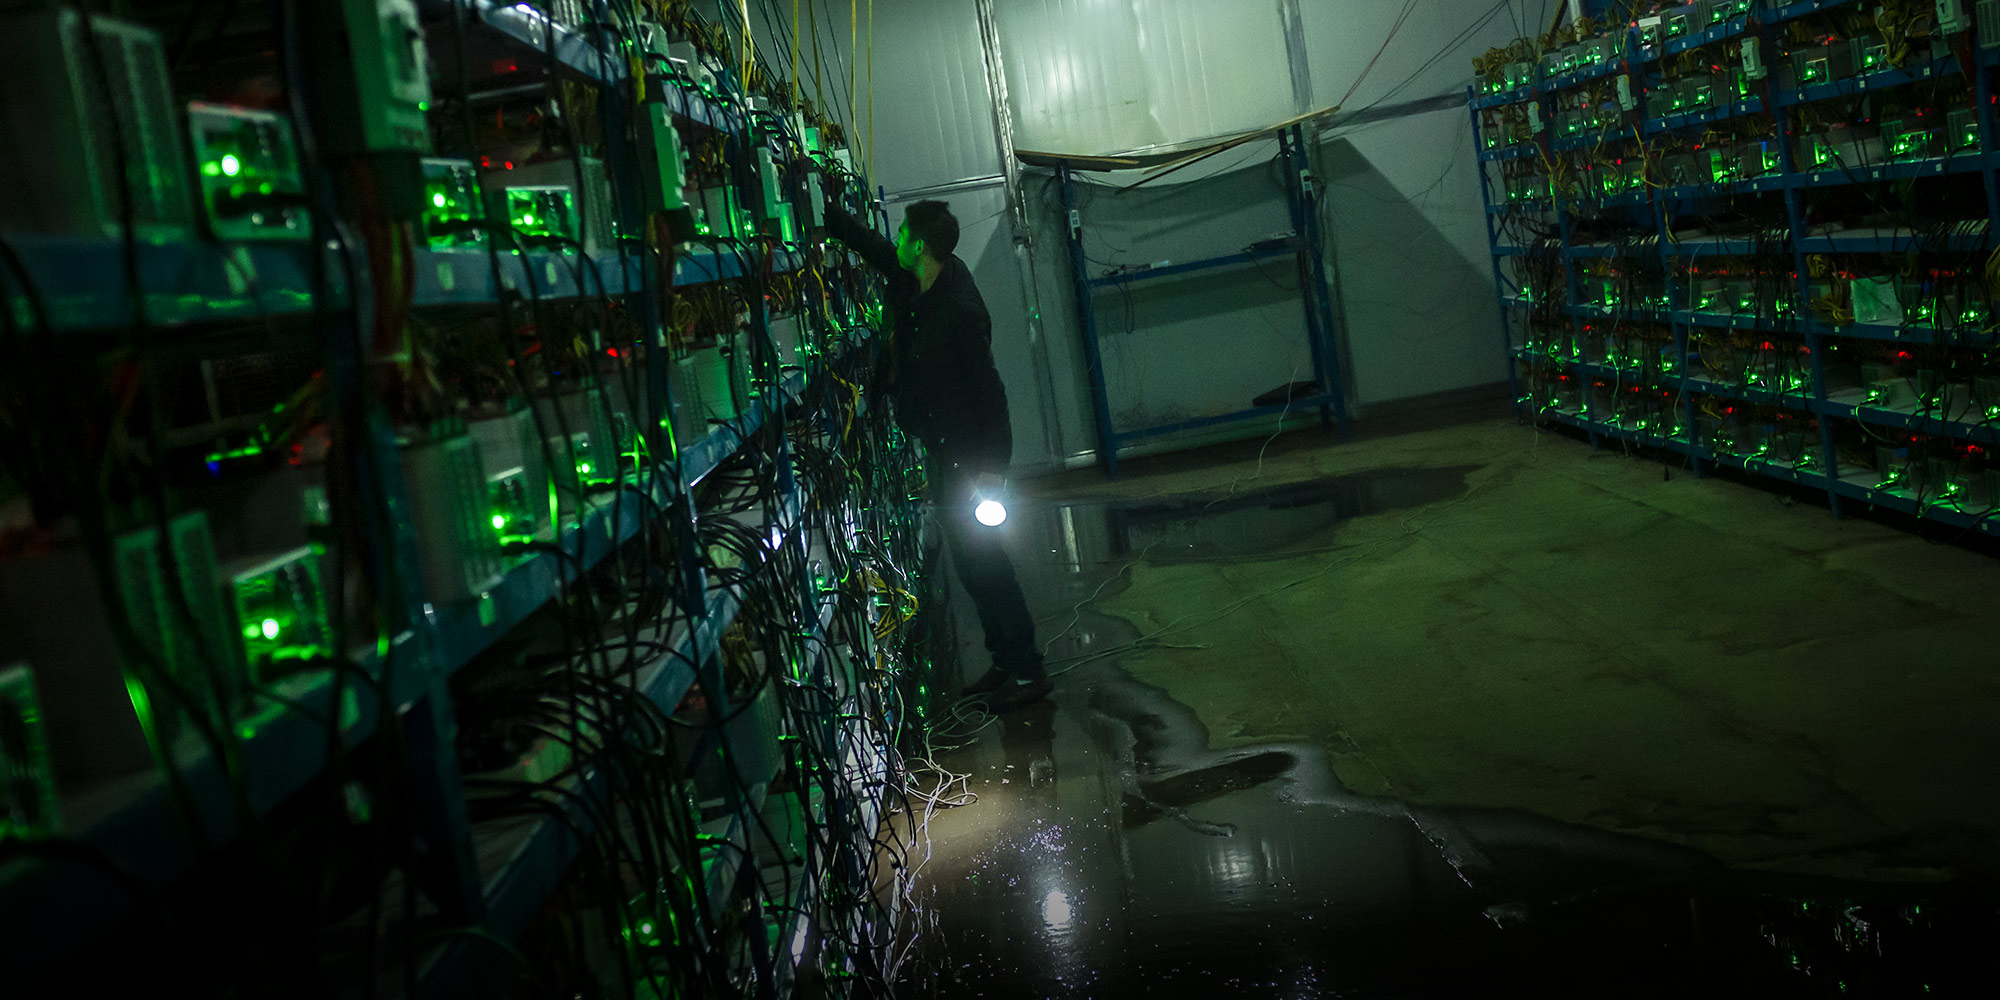 As China Pursues a Green Future, Bitcoin Miners Feel the Squeeze - Sixth Tone